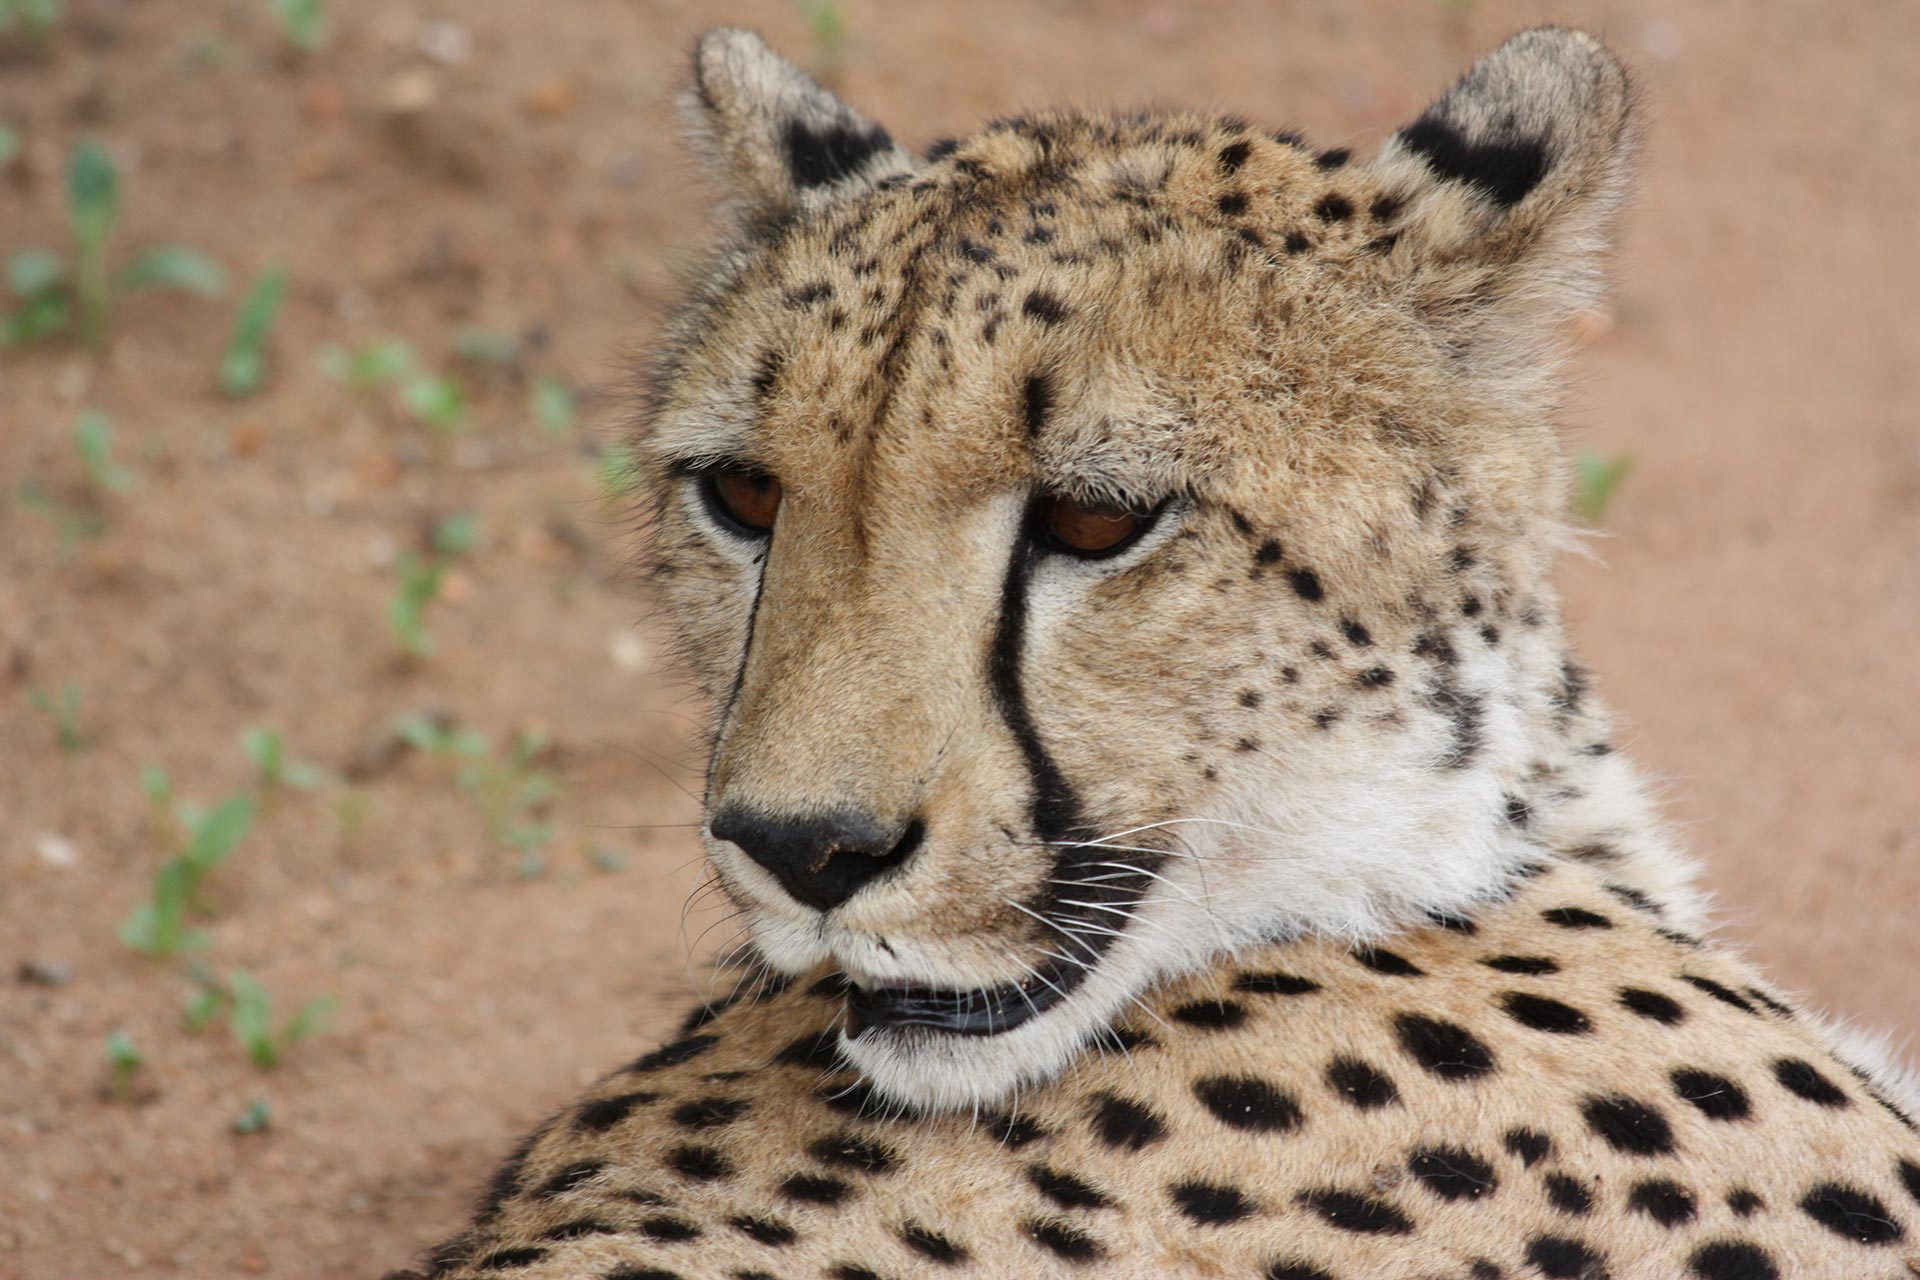 Combine your Cheetah Centre visit with a Harties Boat Cruise, : Harties Cheetah Centre, Ann van Dyk Cheetah Centre, Harties Boat Cruise, What to do in the Magaliesberg, Cape Vulture Vulpro, De Wild Cheetah Centre